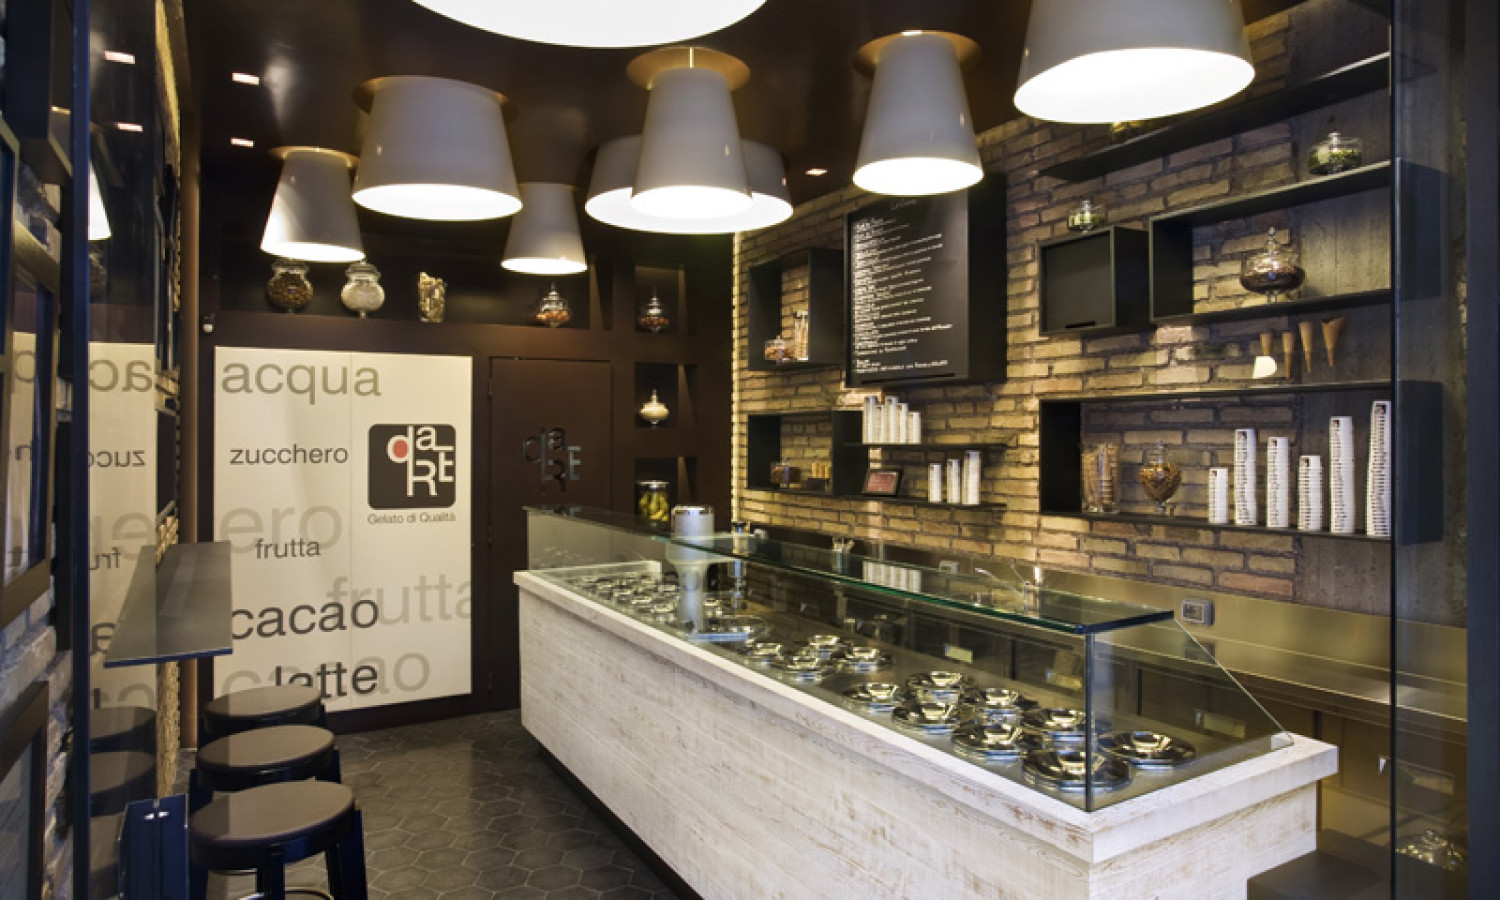 Marco ciampa gelateria dare for Da designs interior design